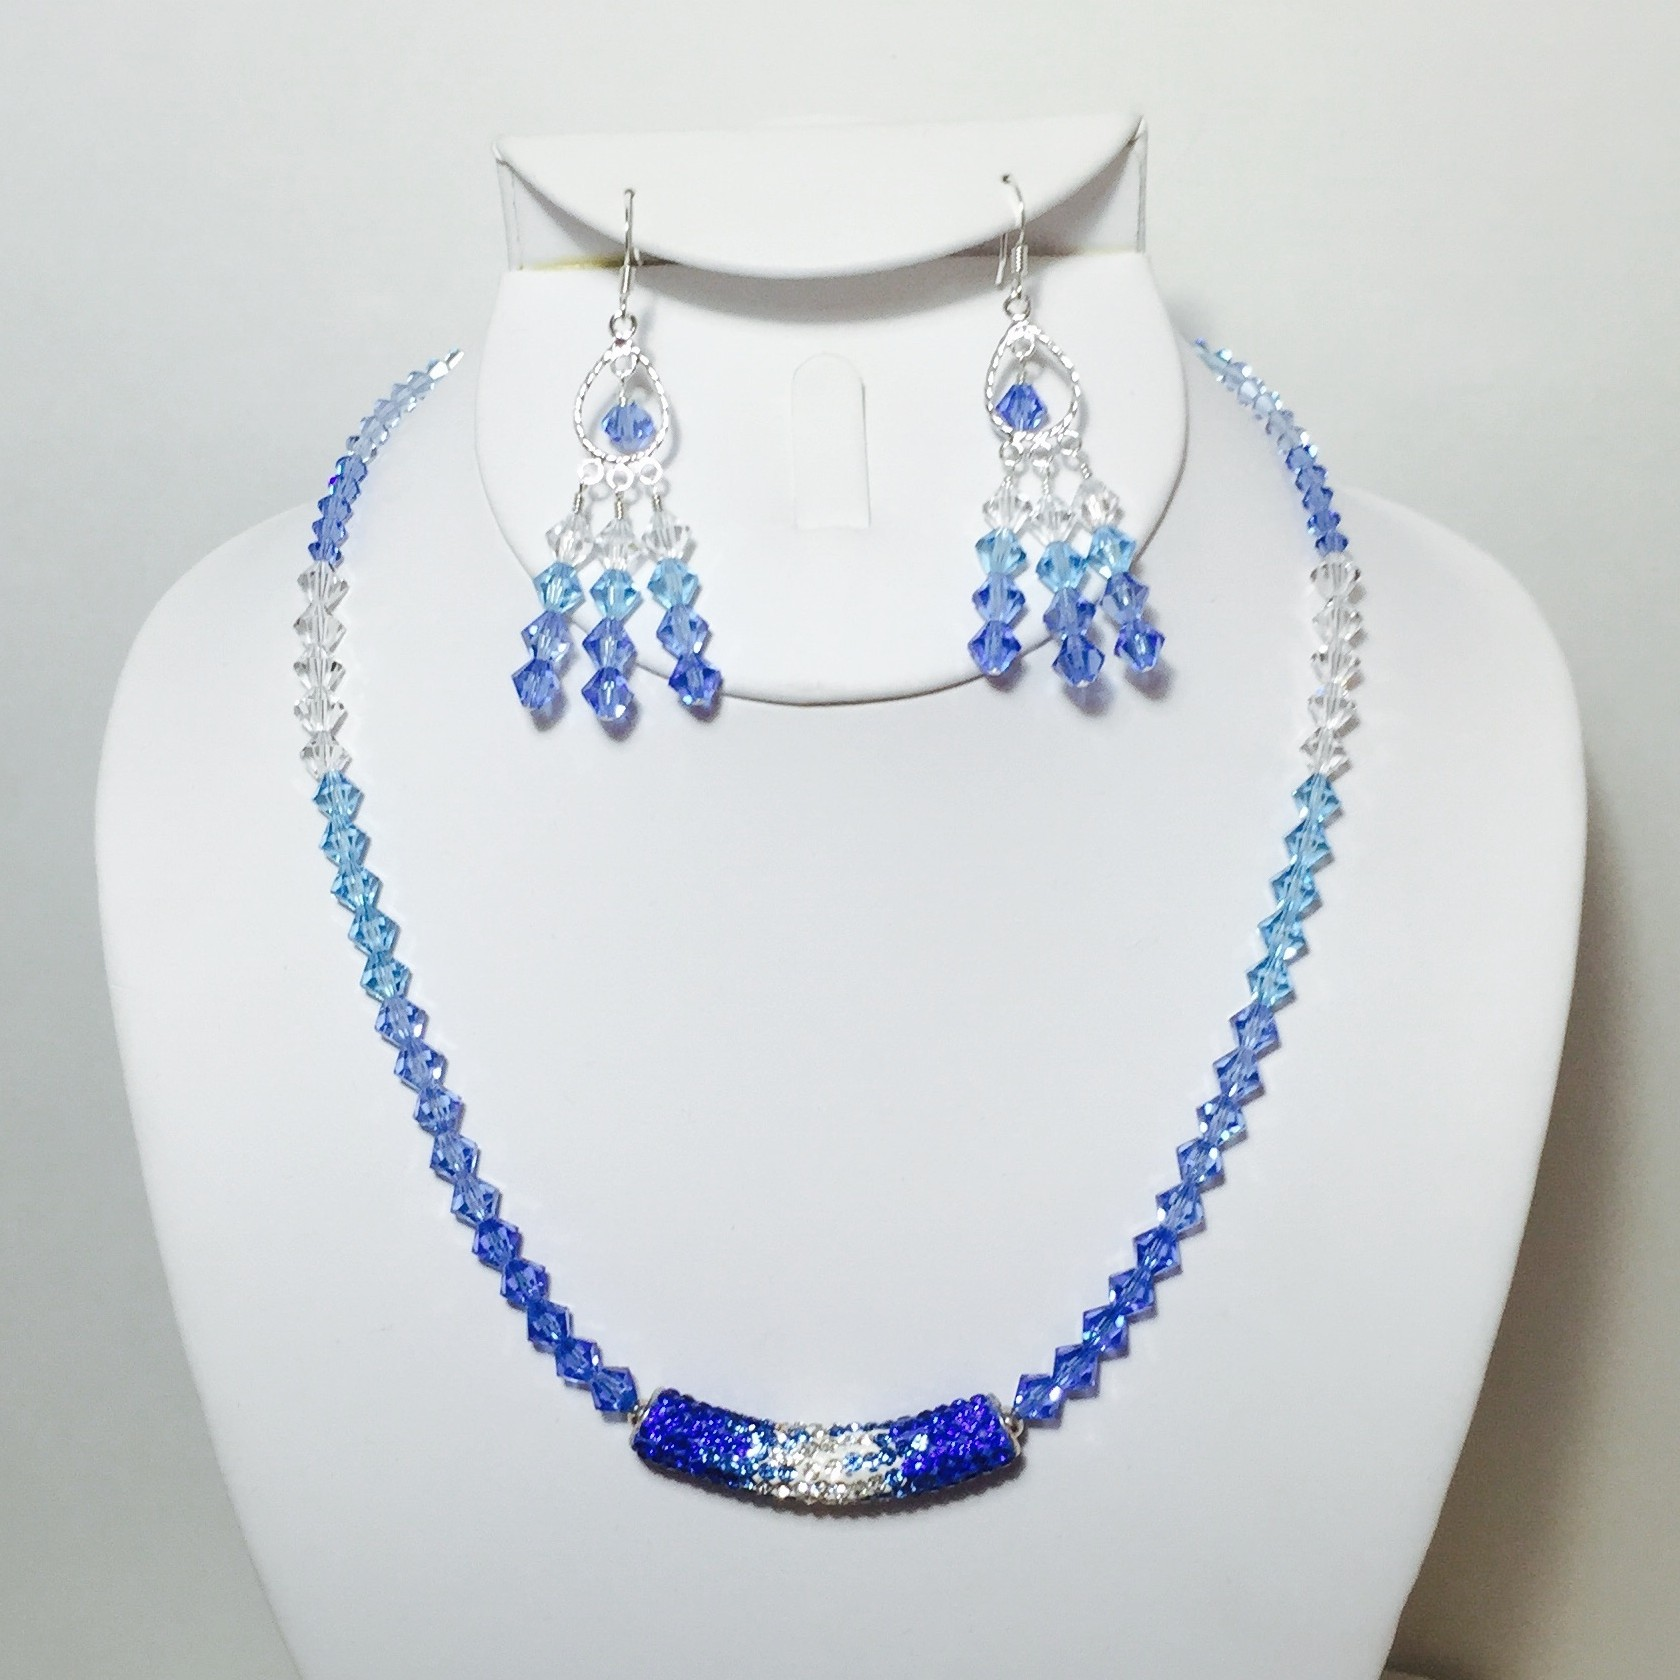 Crystals necklace and earrings set